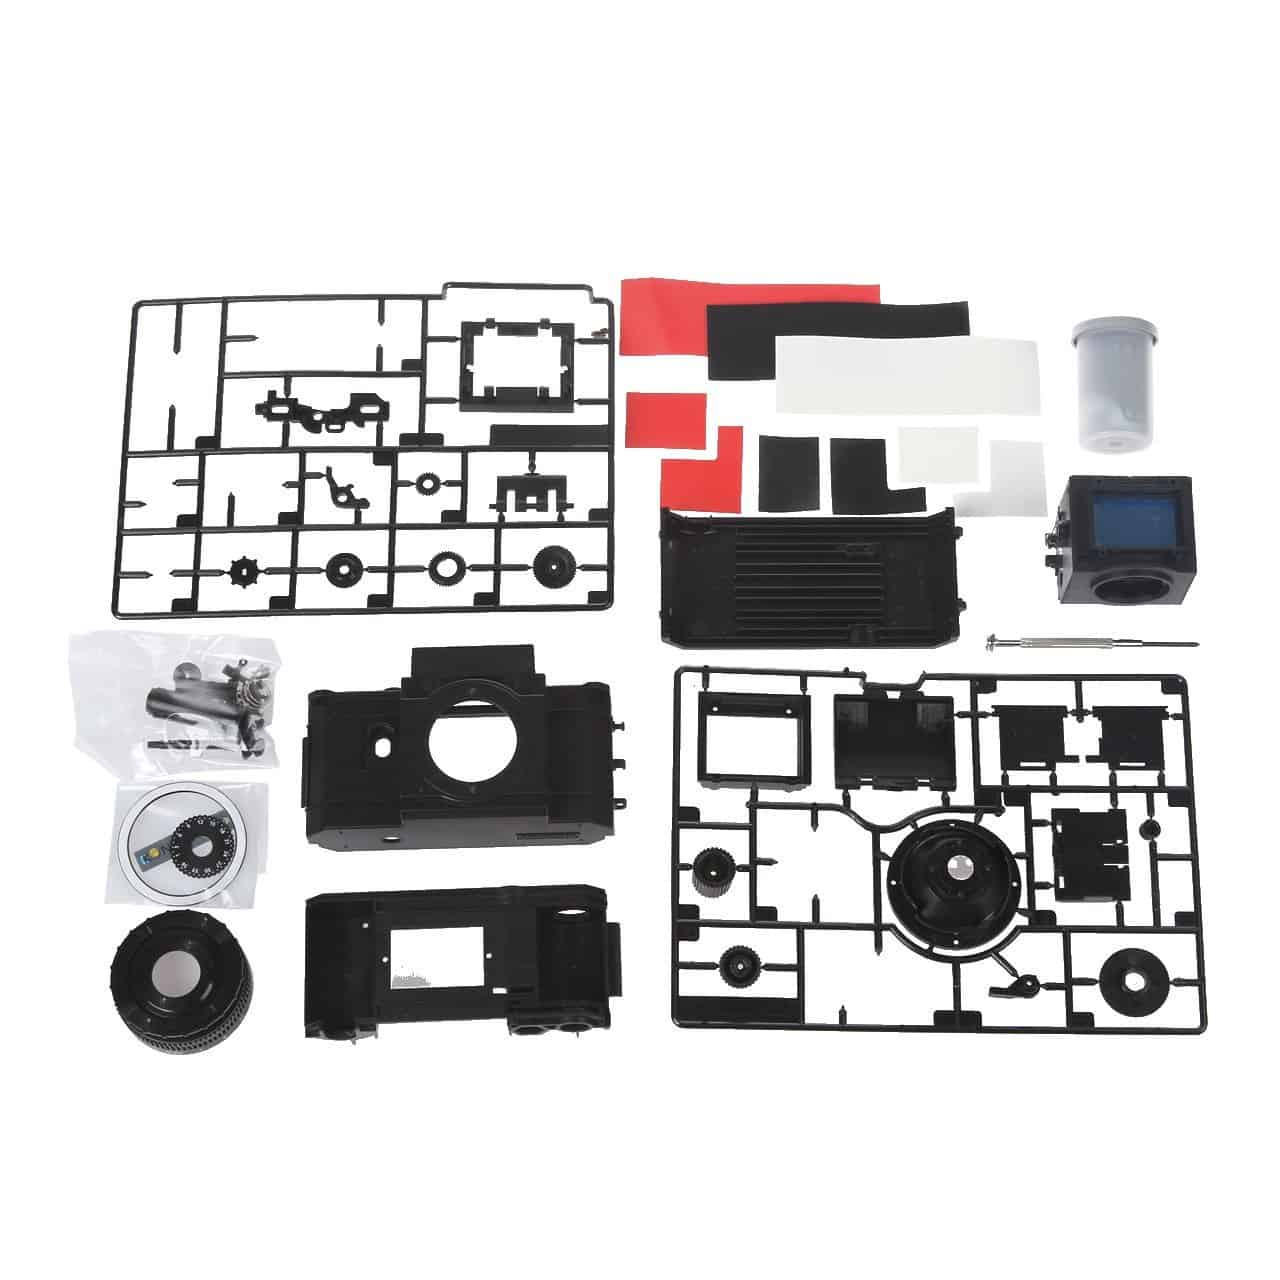 Lomography Konstruktor DIY 35mm SLR Camera Kit